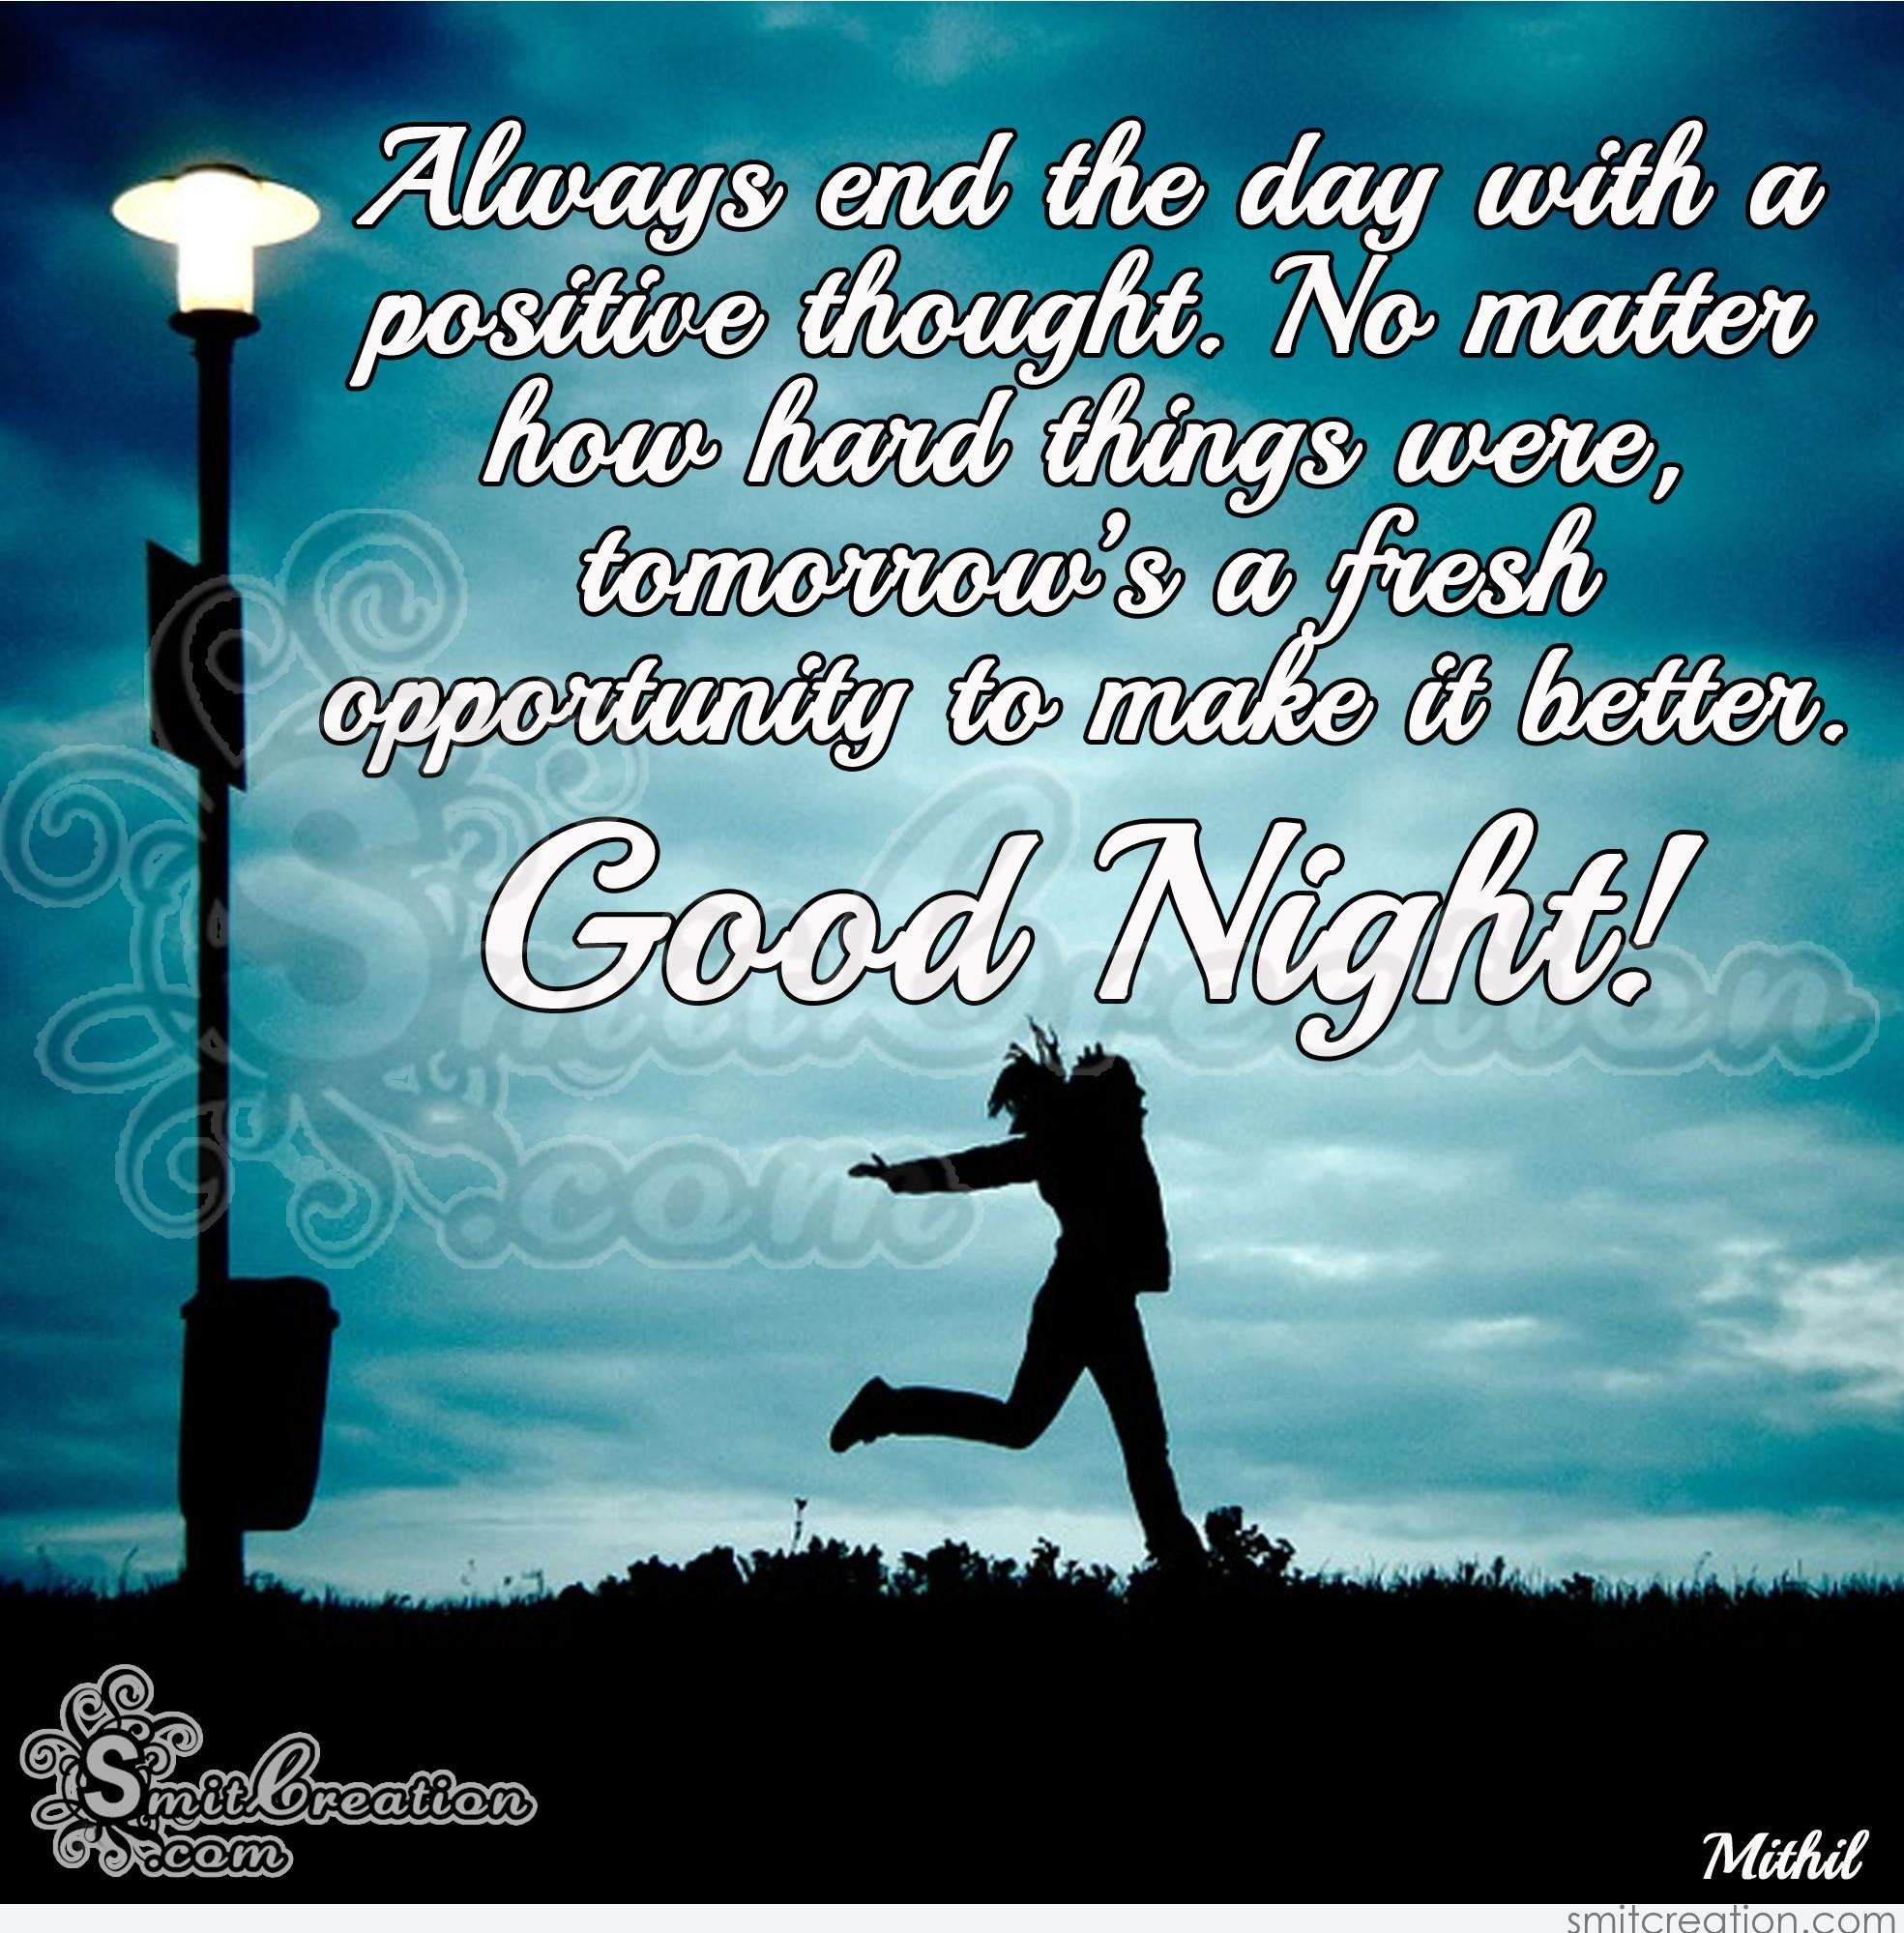 Quotes Good Night Good Night Inspirational Quotes Pictures And Graphics